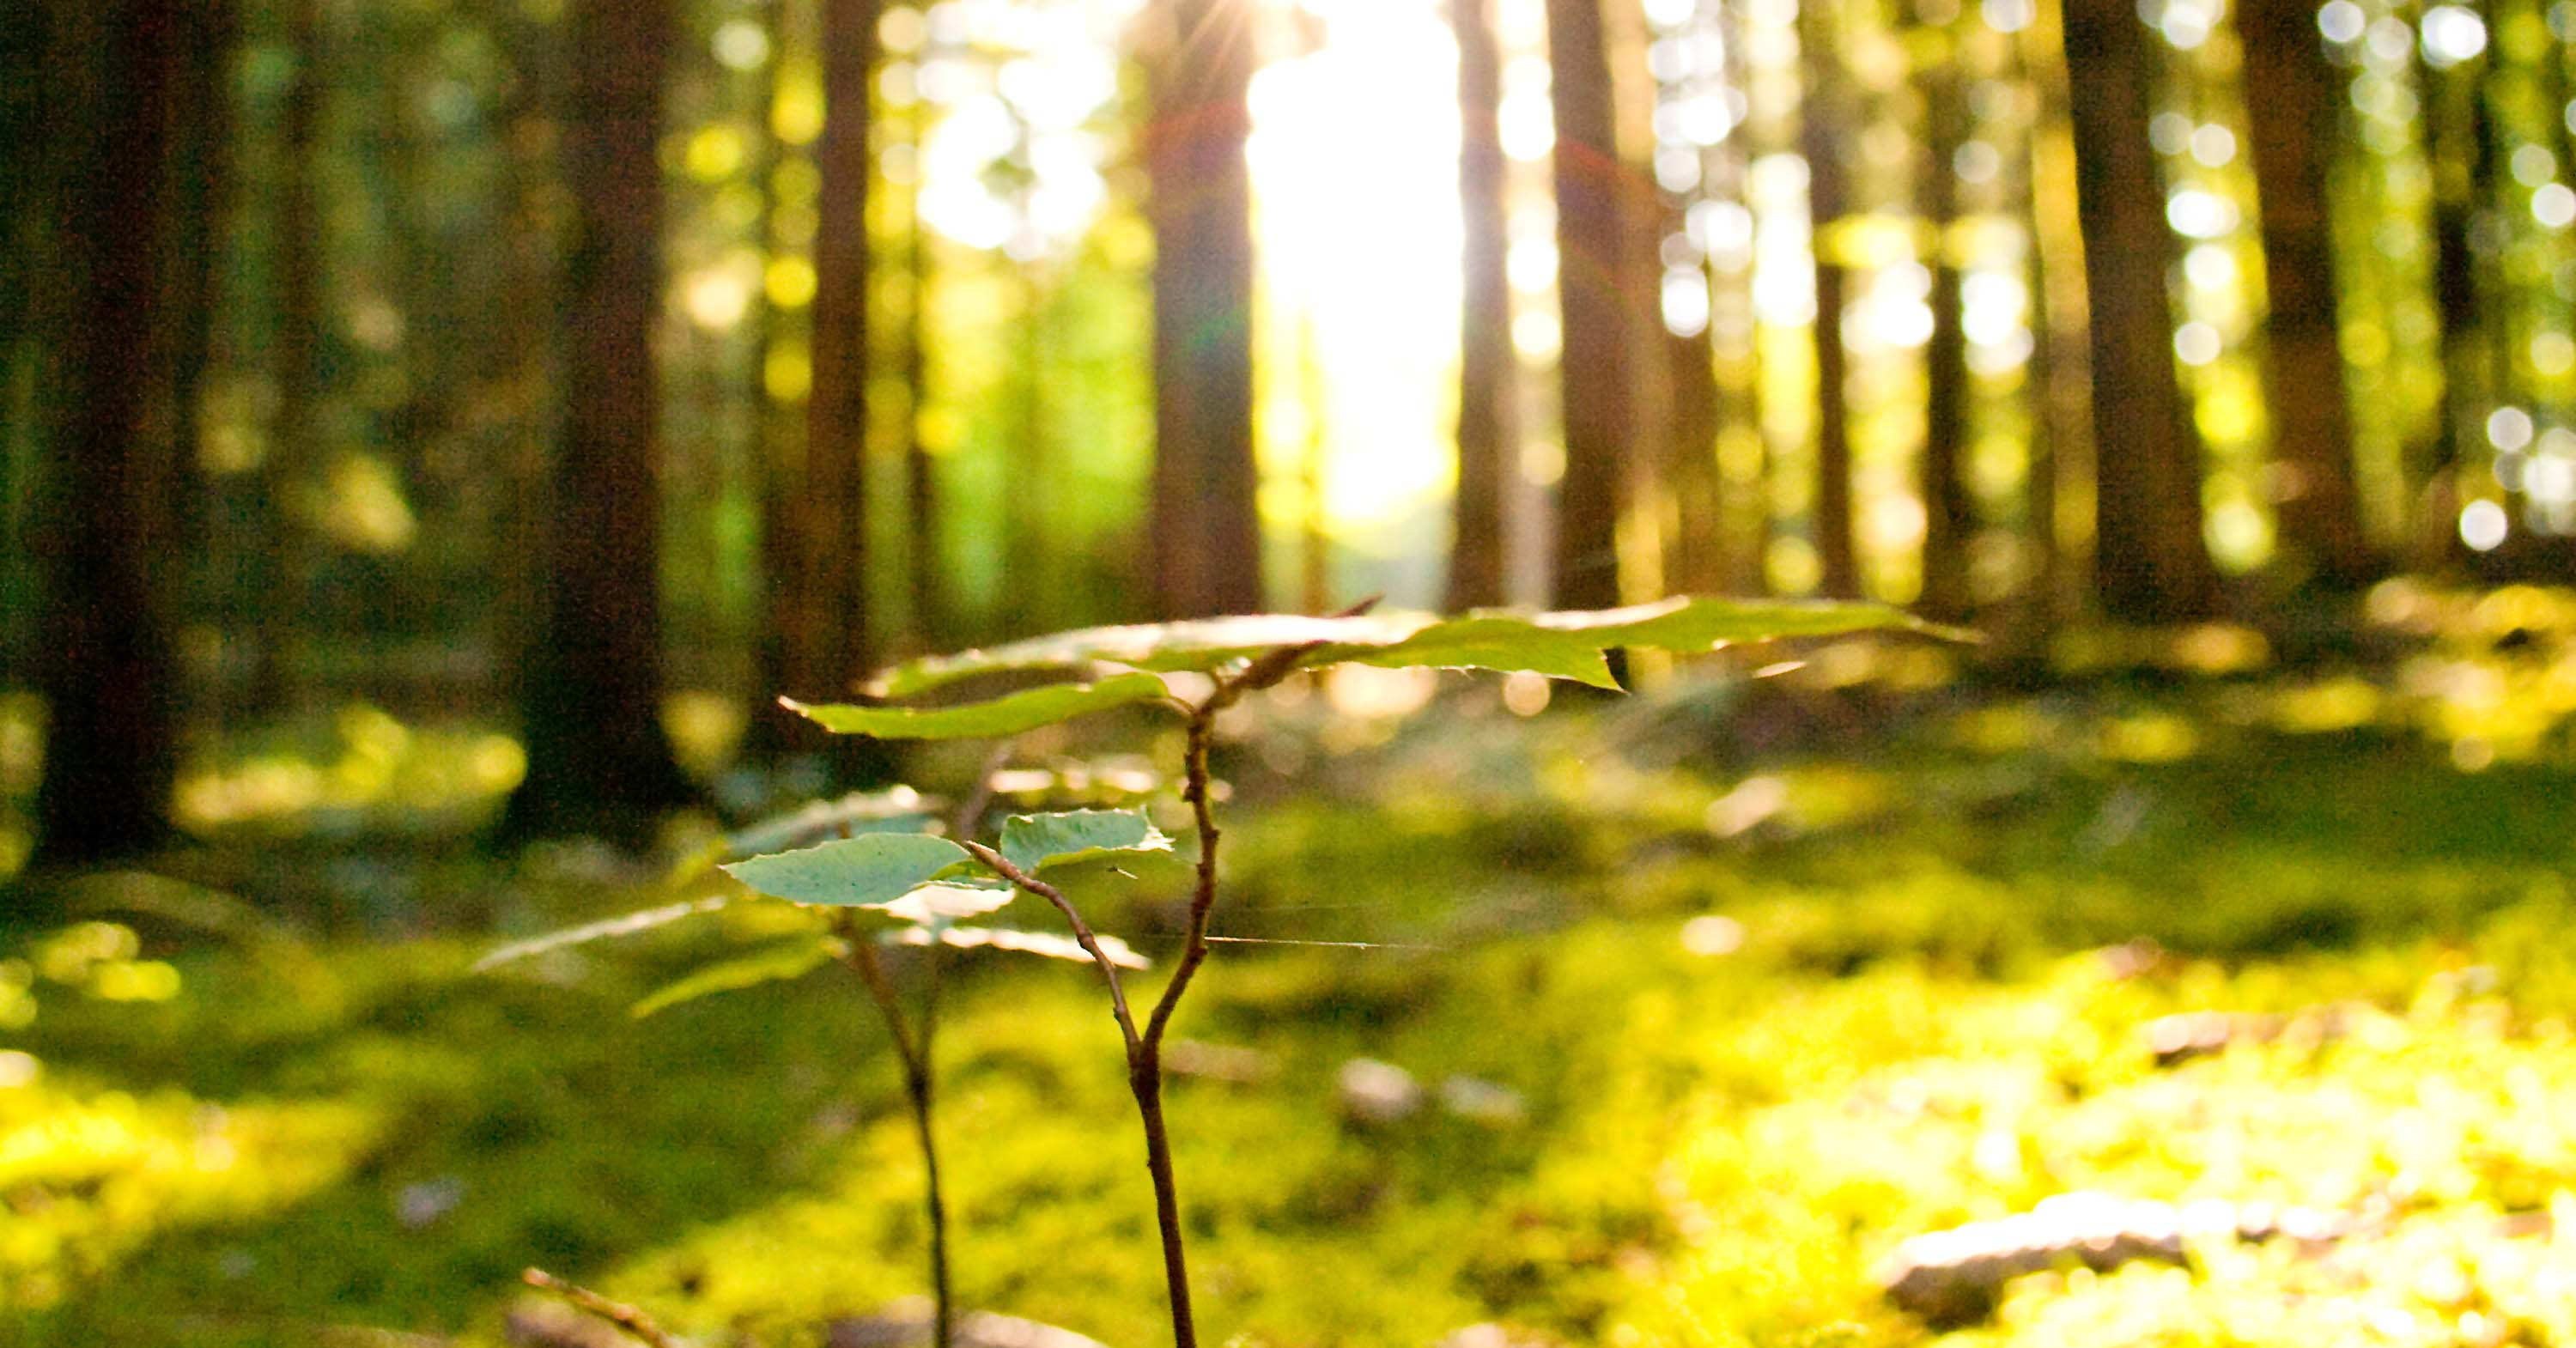 Lignoflot_Mostphotos820748-beautiful-scenery-and-sunbeams-in-the-forest.jpg